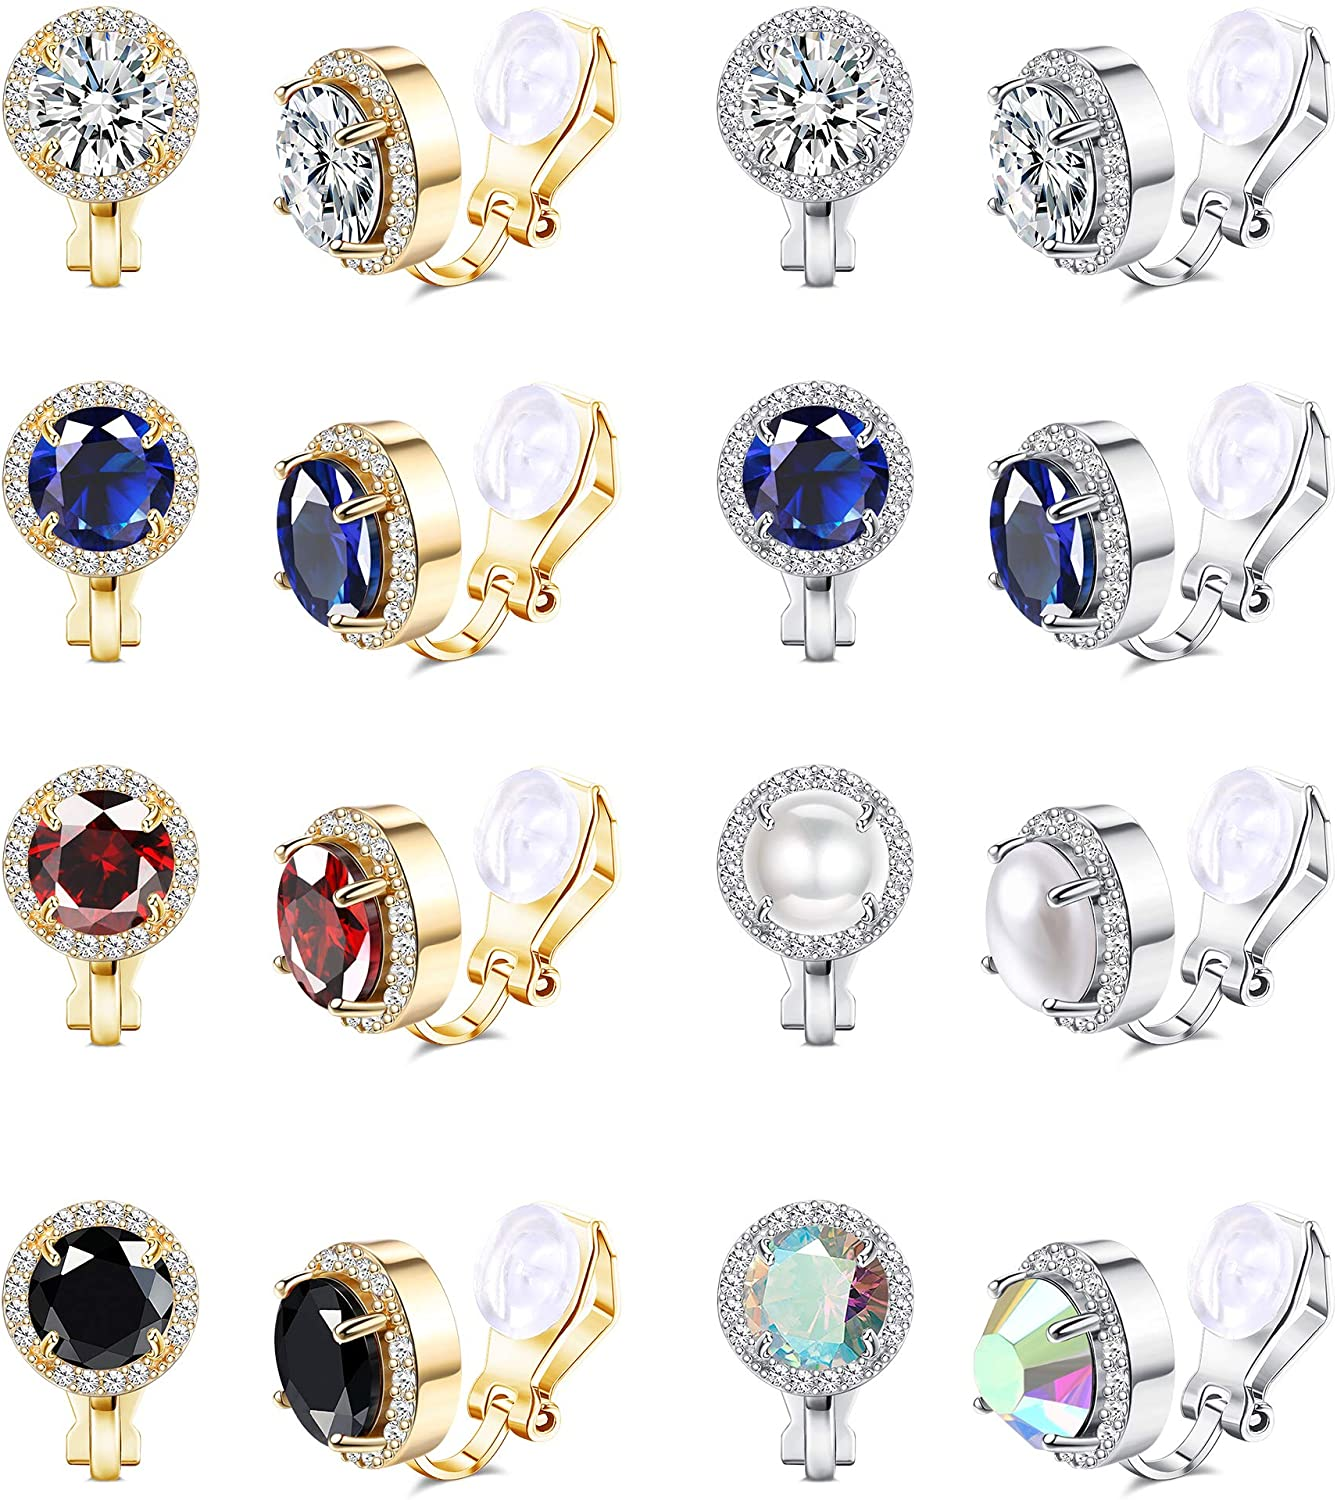 LOYALLOOK 8Pairs Round Clip Earrings for Women Faux Pearl Cubic Zirconia Non Piercing Clip On Earrings Fashion Mixed Color Non Pierced Earrings Set